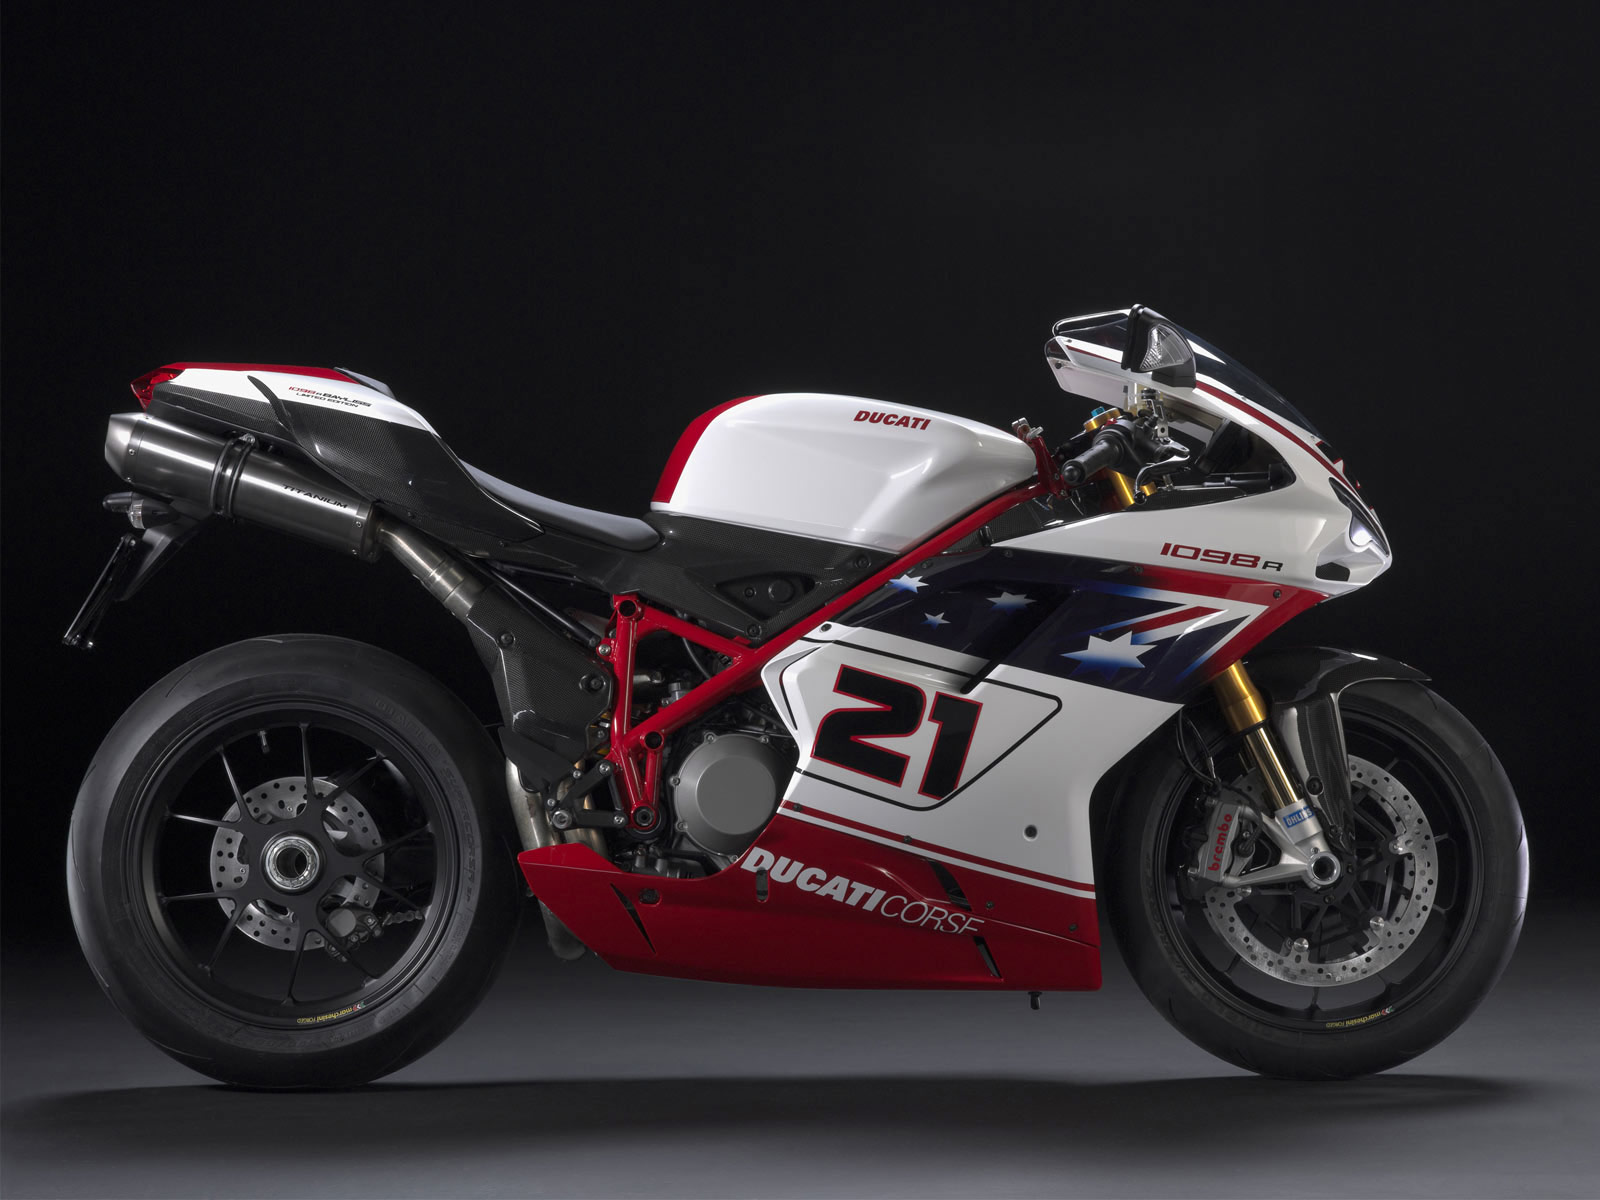 Edition   Ducati   Motorcycles   HiRes Desktop Wallpapers   Page 1 1600x1200